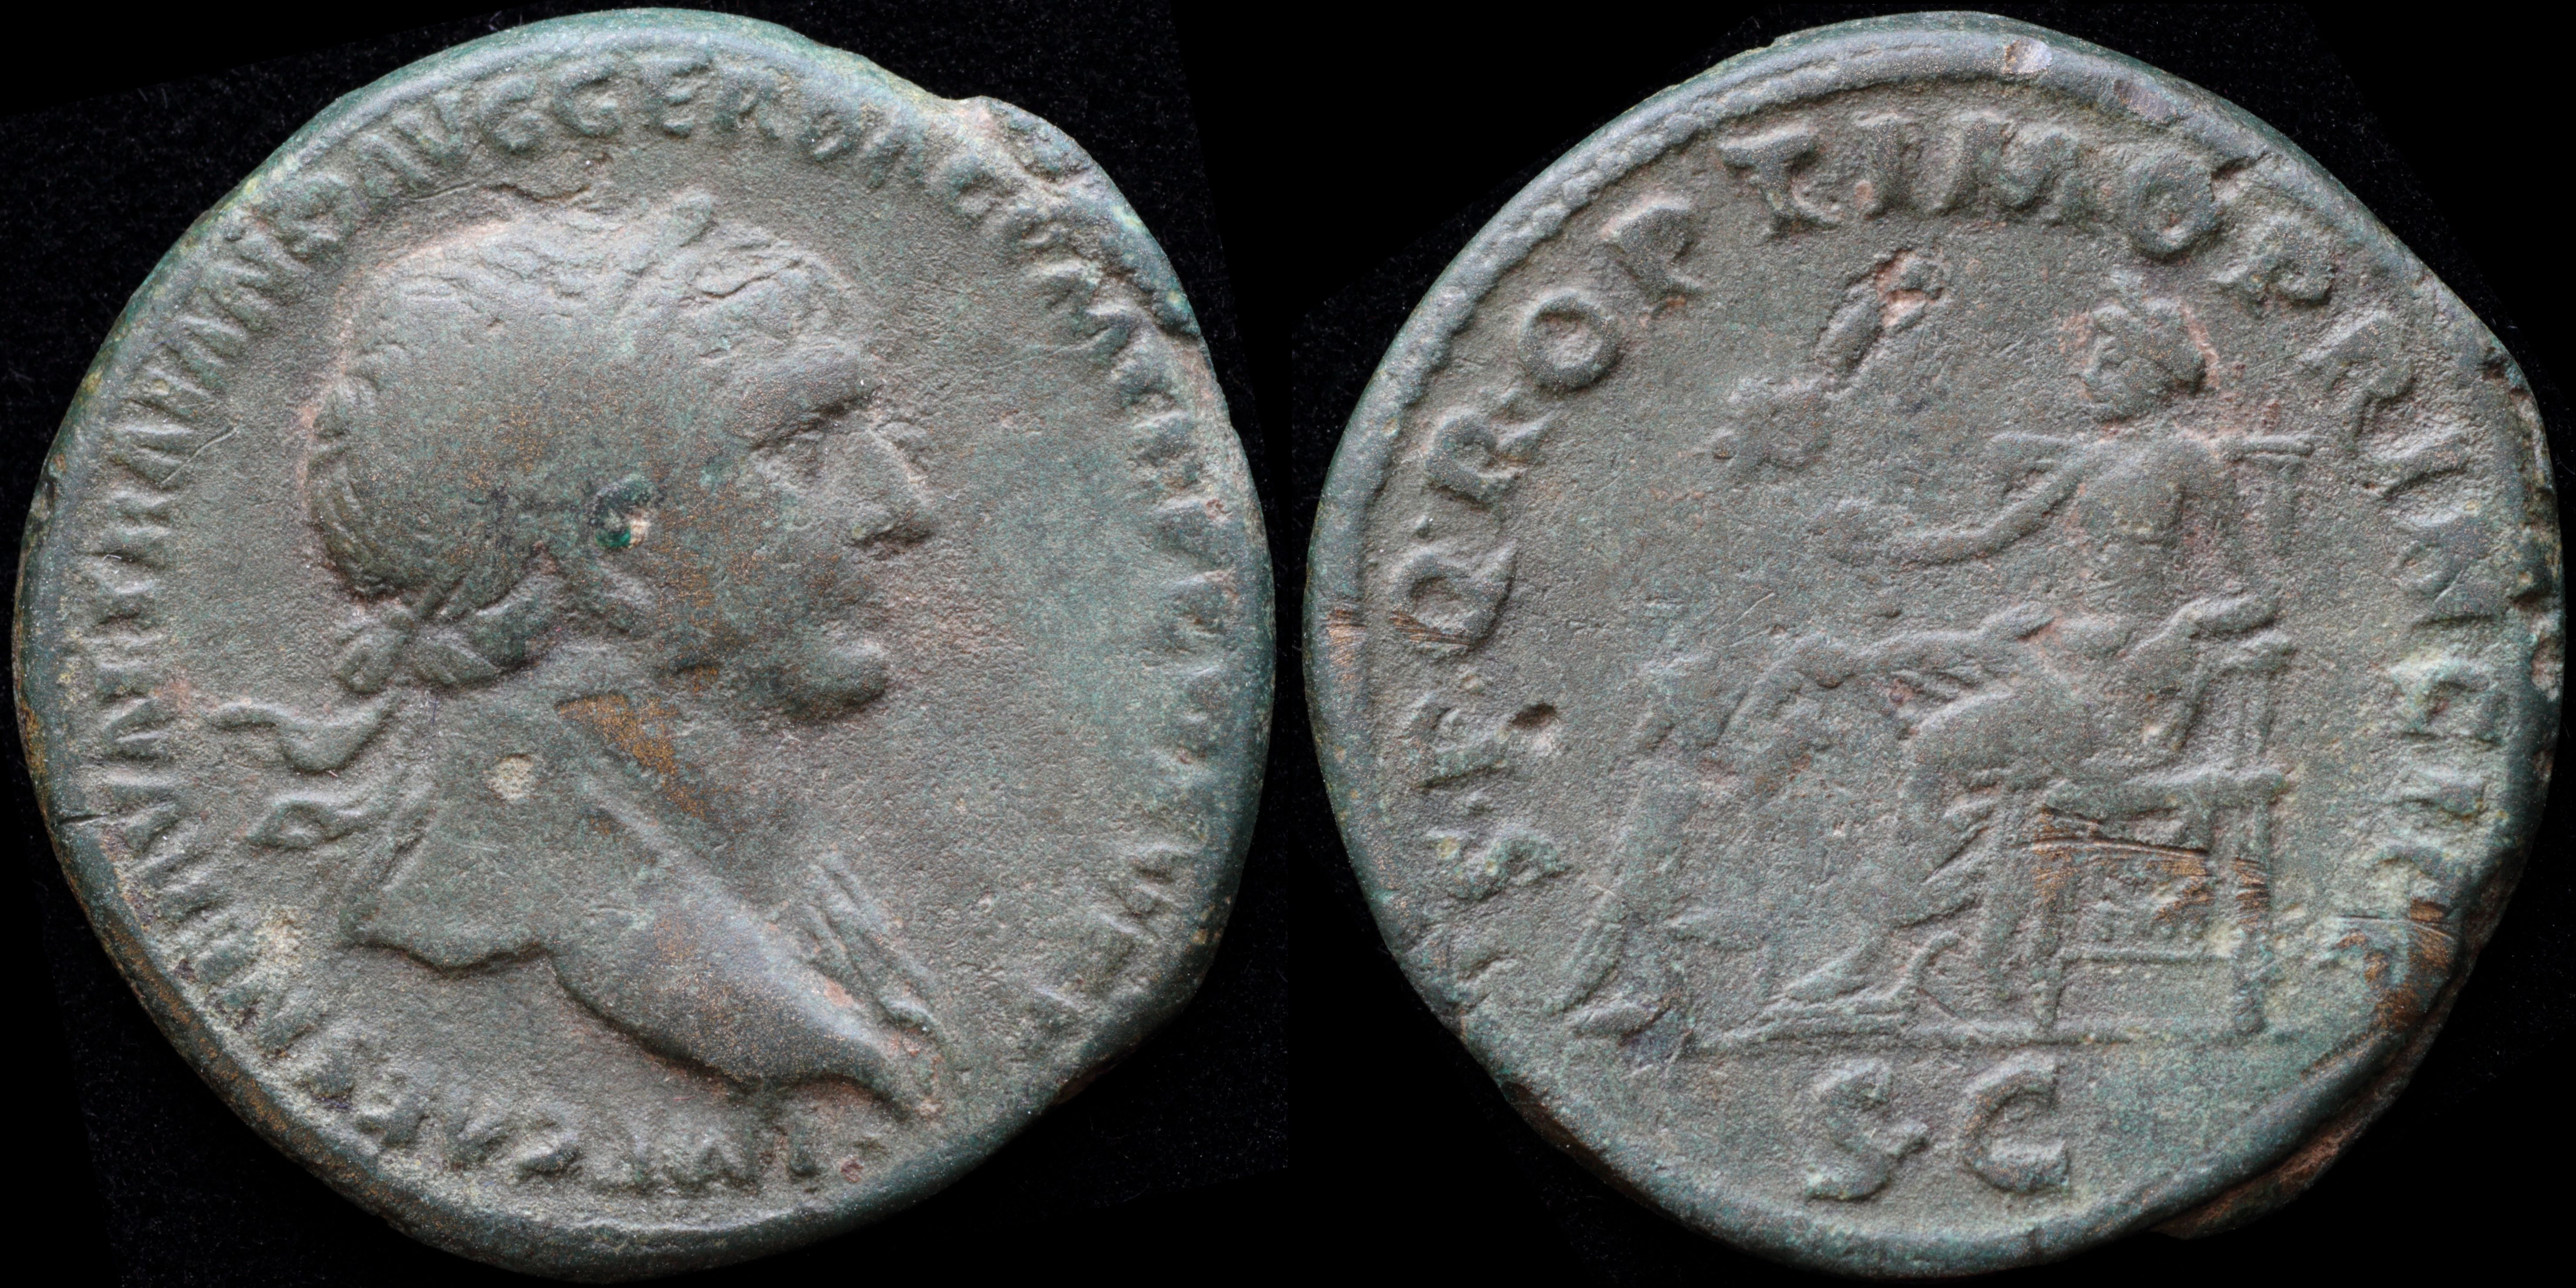 /Files/Images/Coinsite/CoinDB/Trajan_Pax_as.jpg